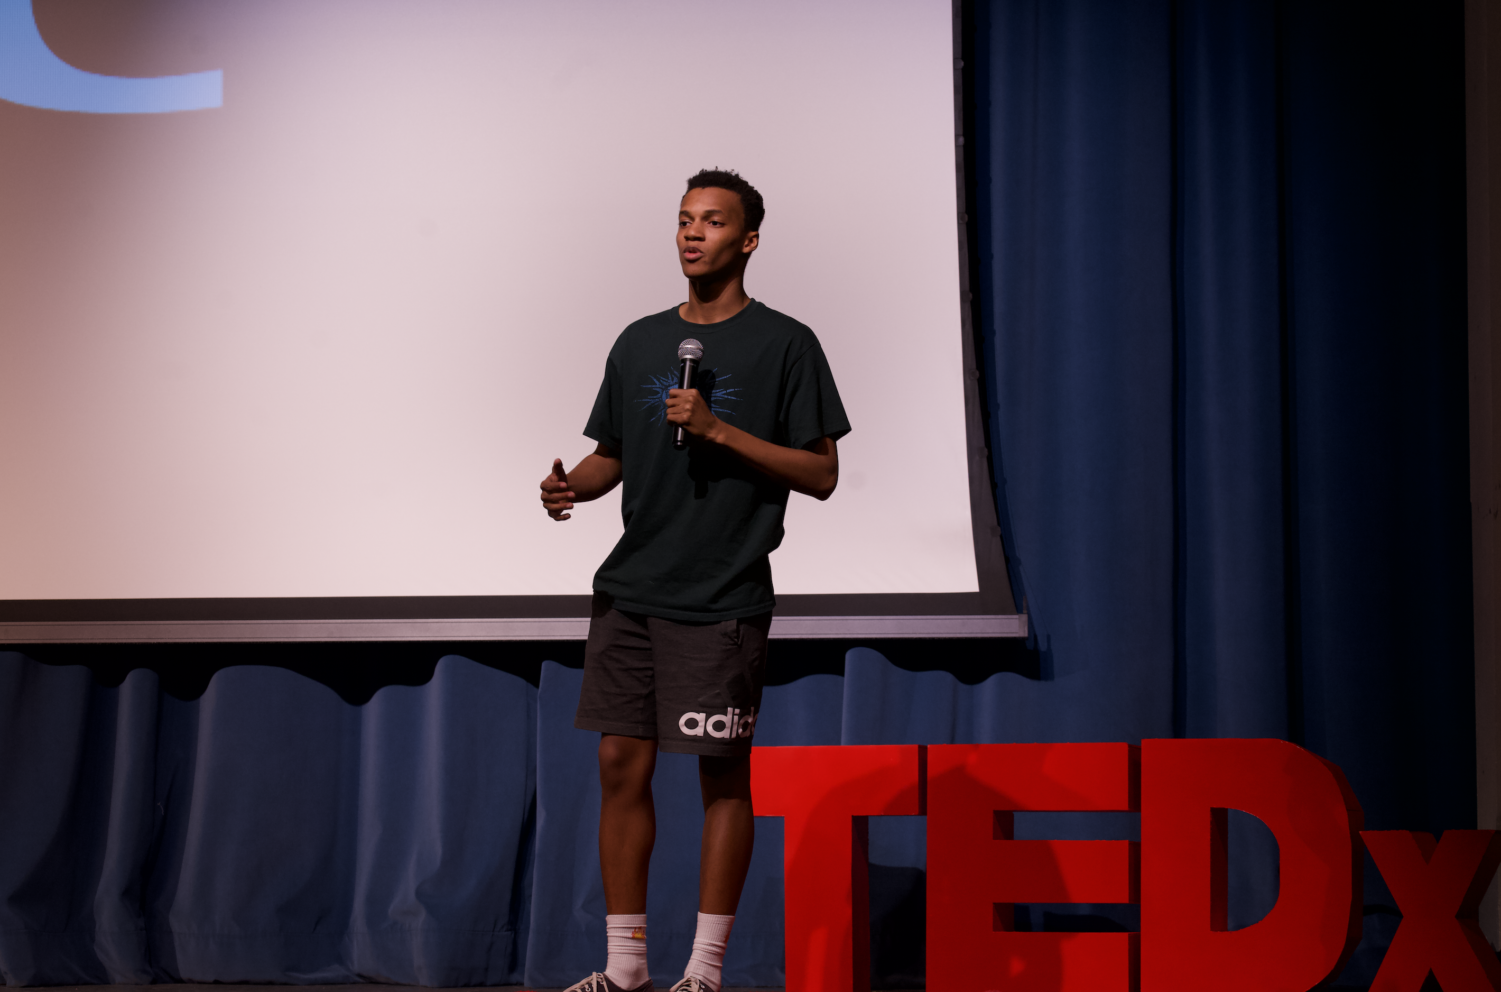 Trekahry Gadson goes through TED talk at TEDxEMHS practice.